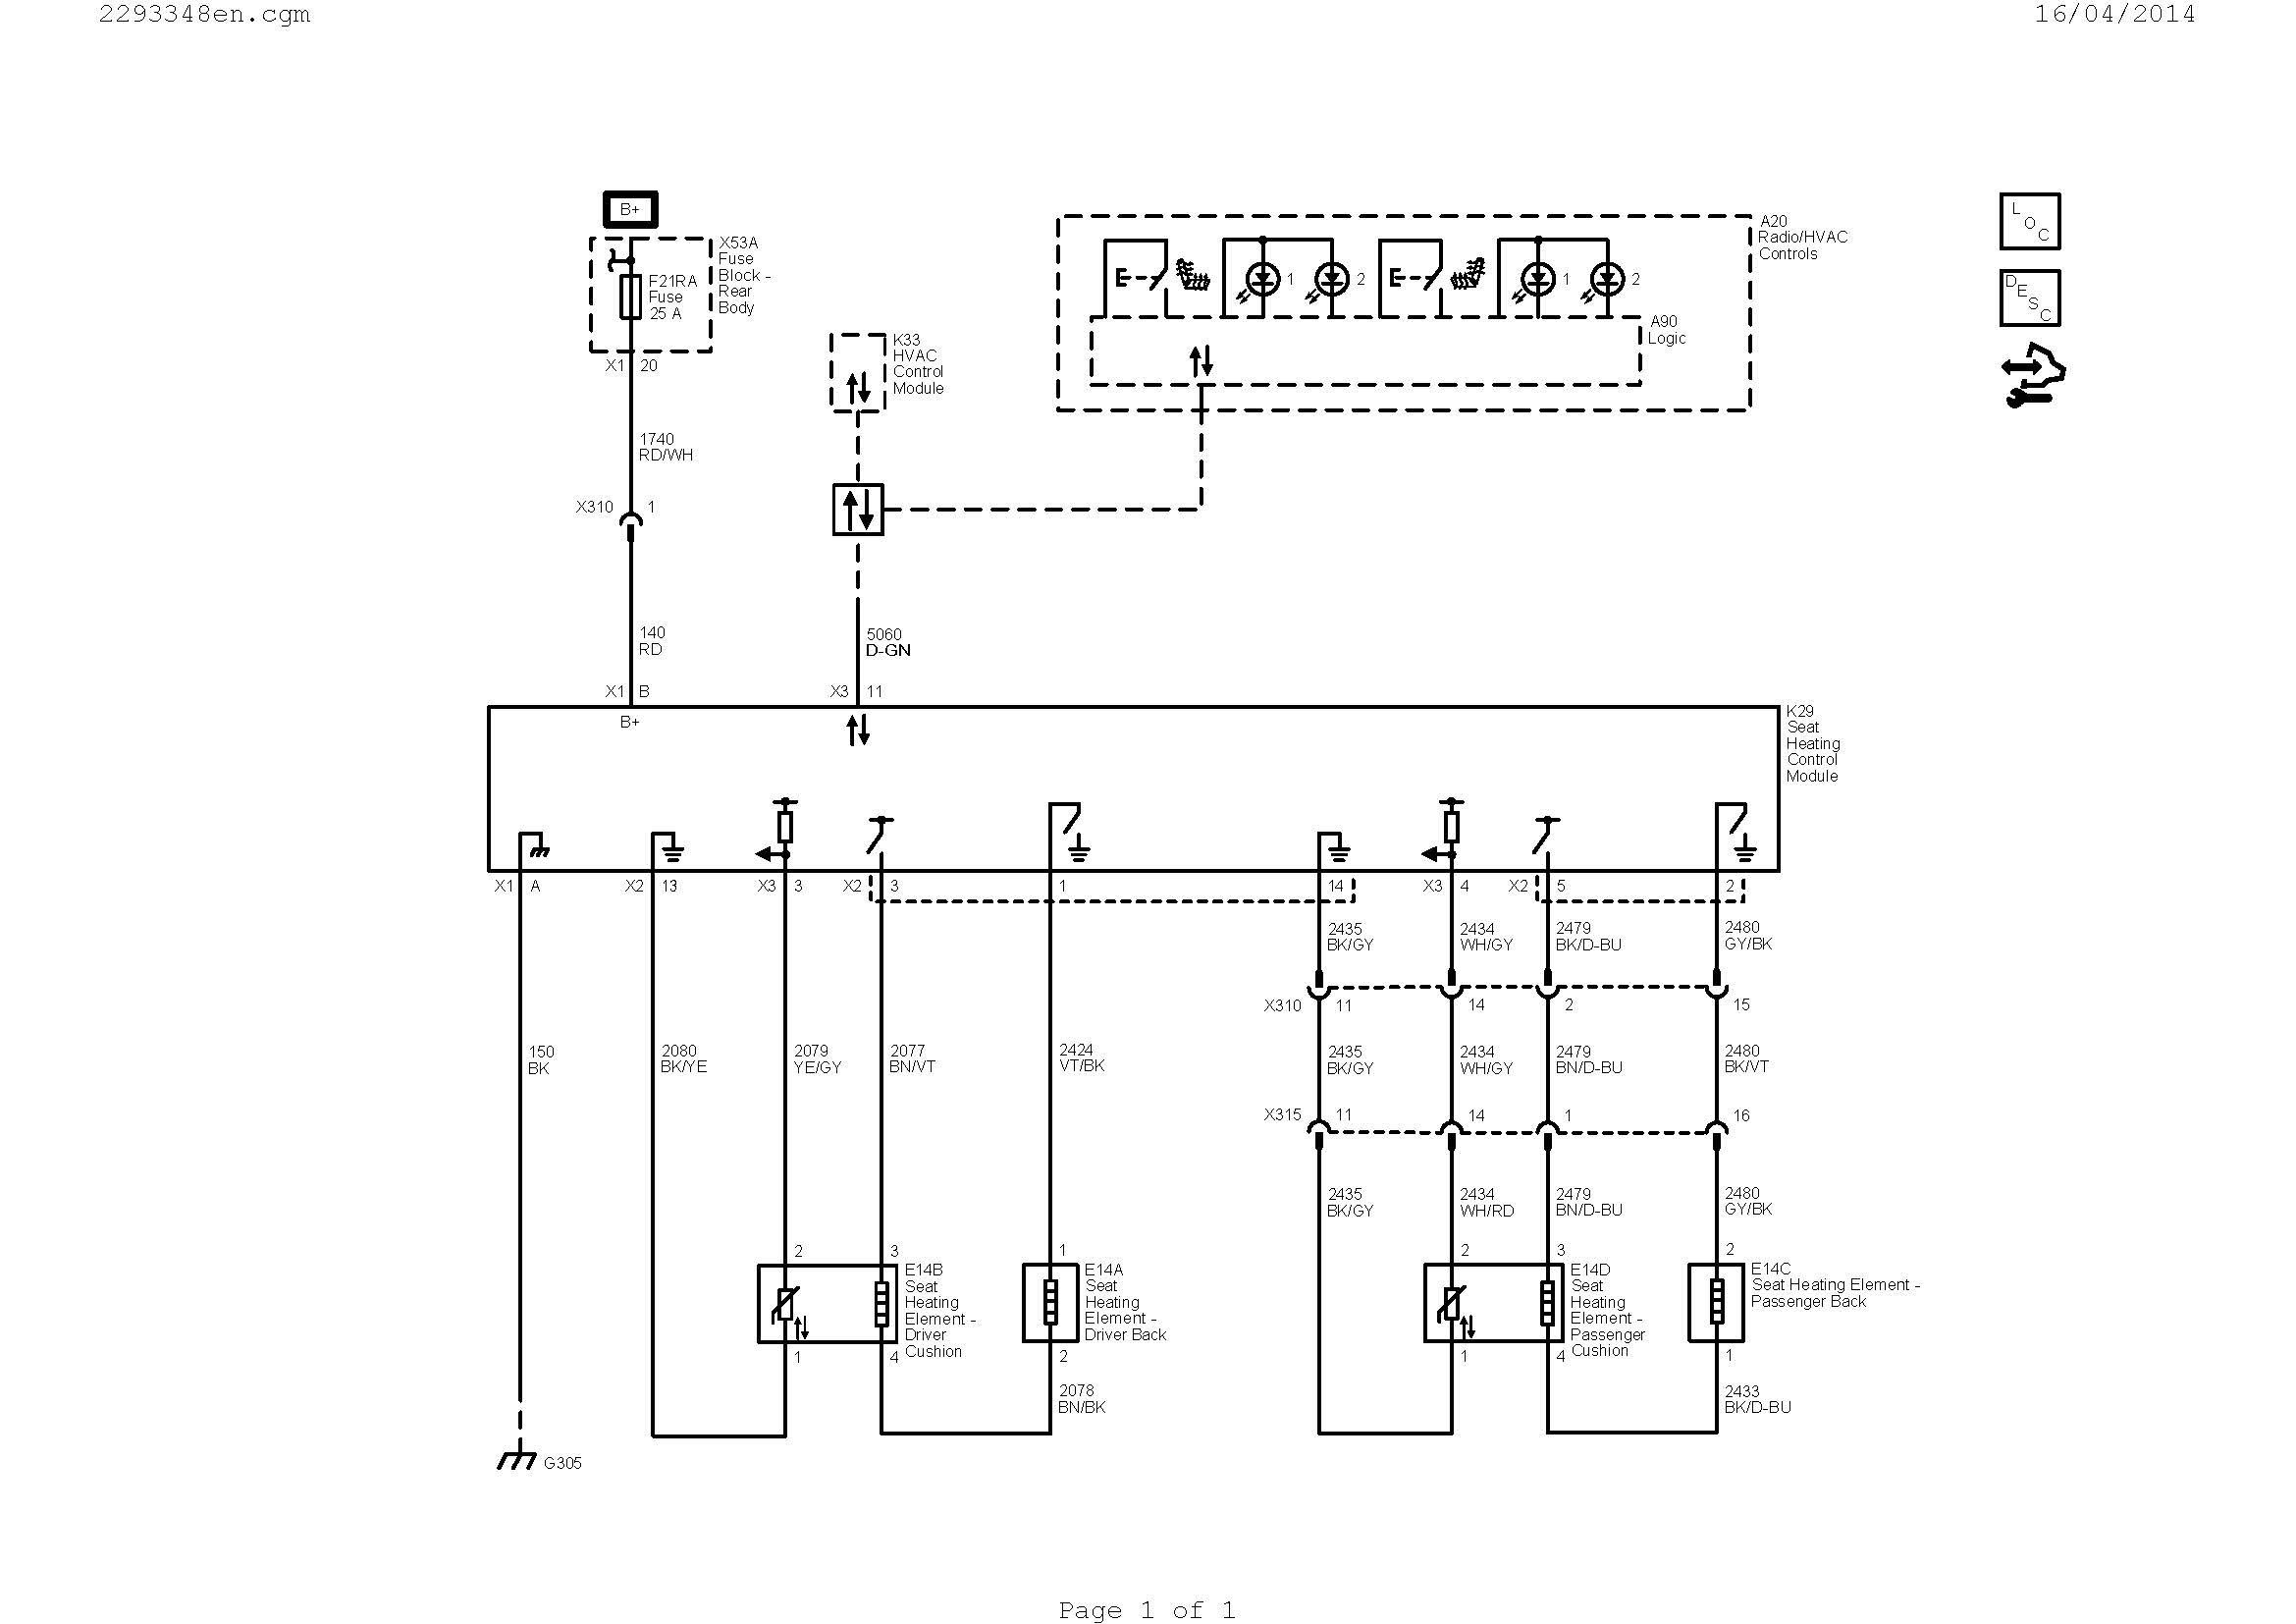 rs485 wiring diagram Download-duo therm wiring diagram Download Wiring A Ac Thermostat Diagram New Wiring Diagram Ac Valid DOWNLOAD Wiring Diagram 6-n